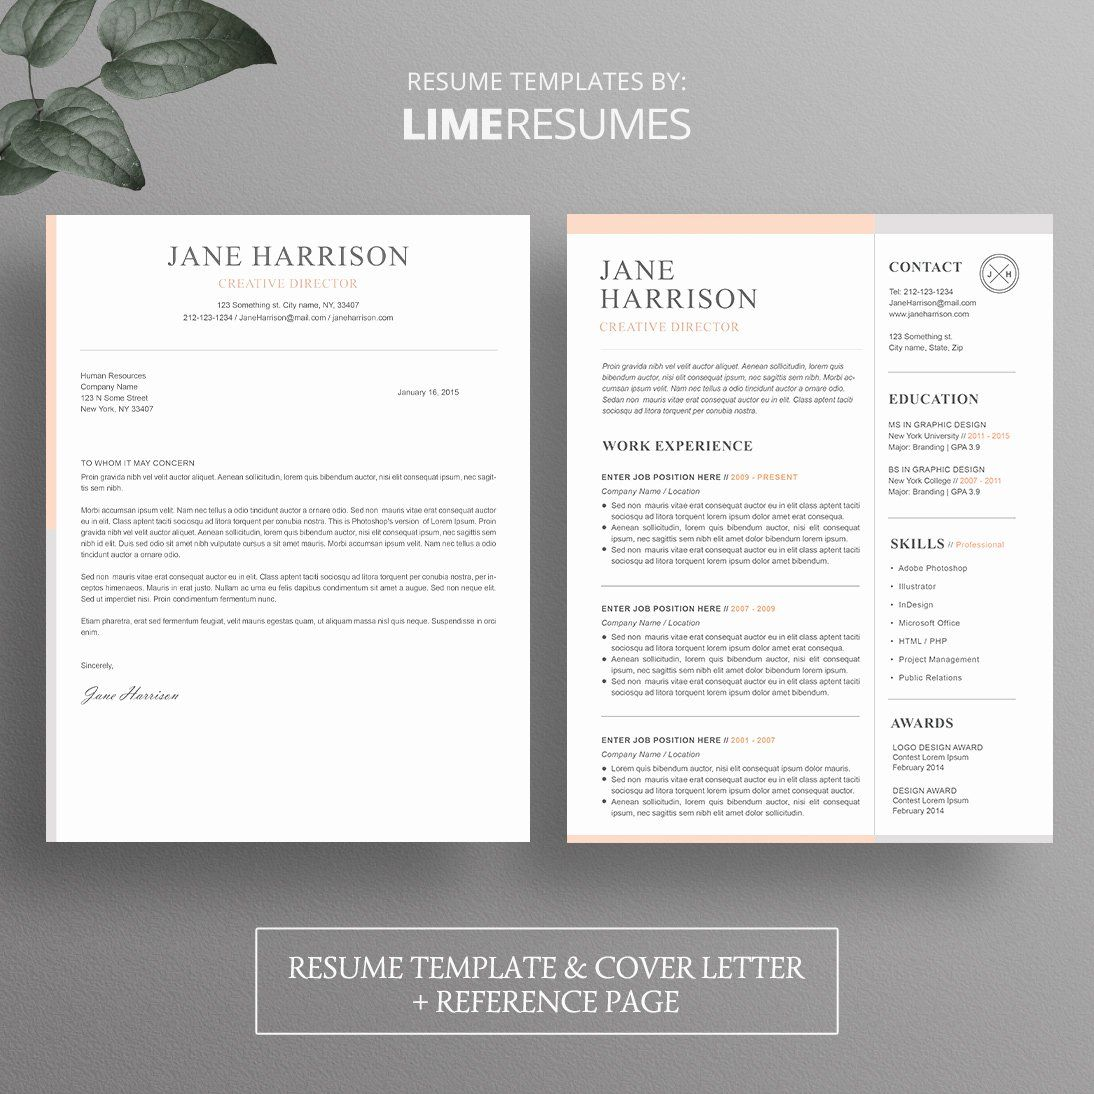 Resume Reference Template Microsoft Word New Resume Template Cover Letter Template F Microsoft Word Resume Template Resume Design Template Letter Template Word Resume reference template microsoft word